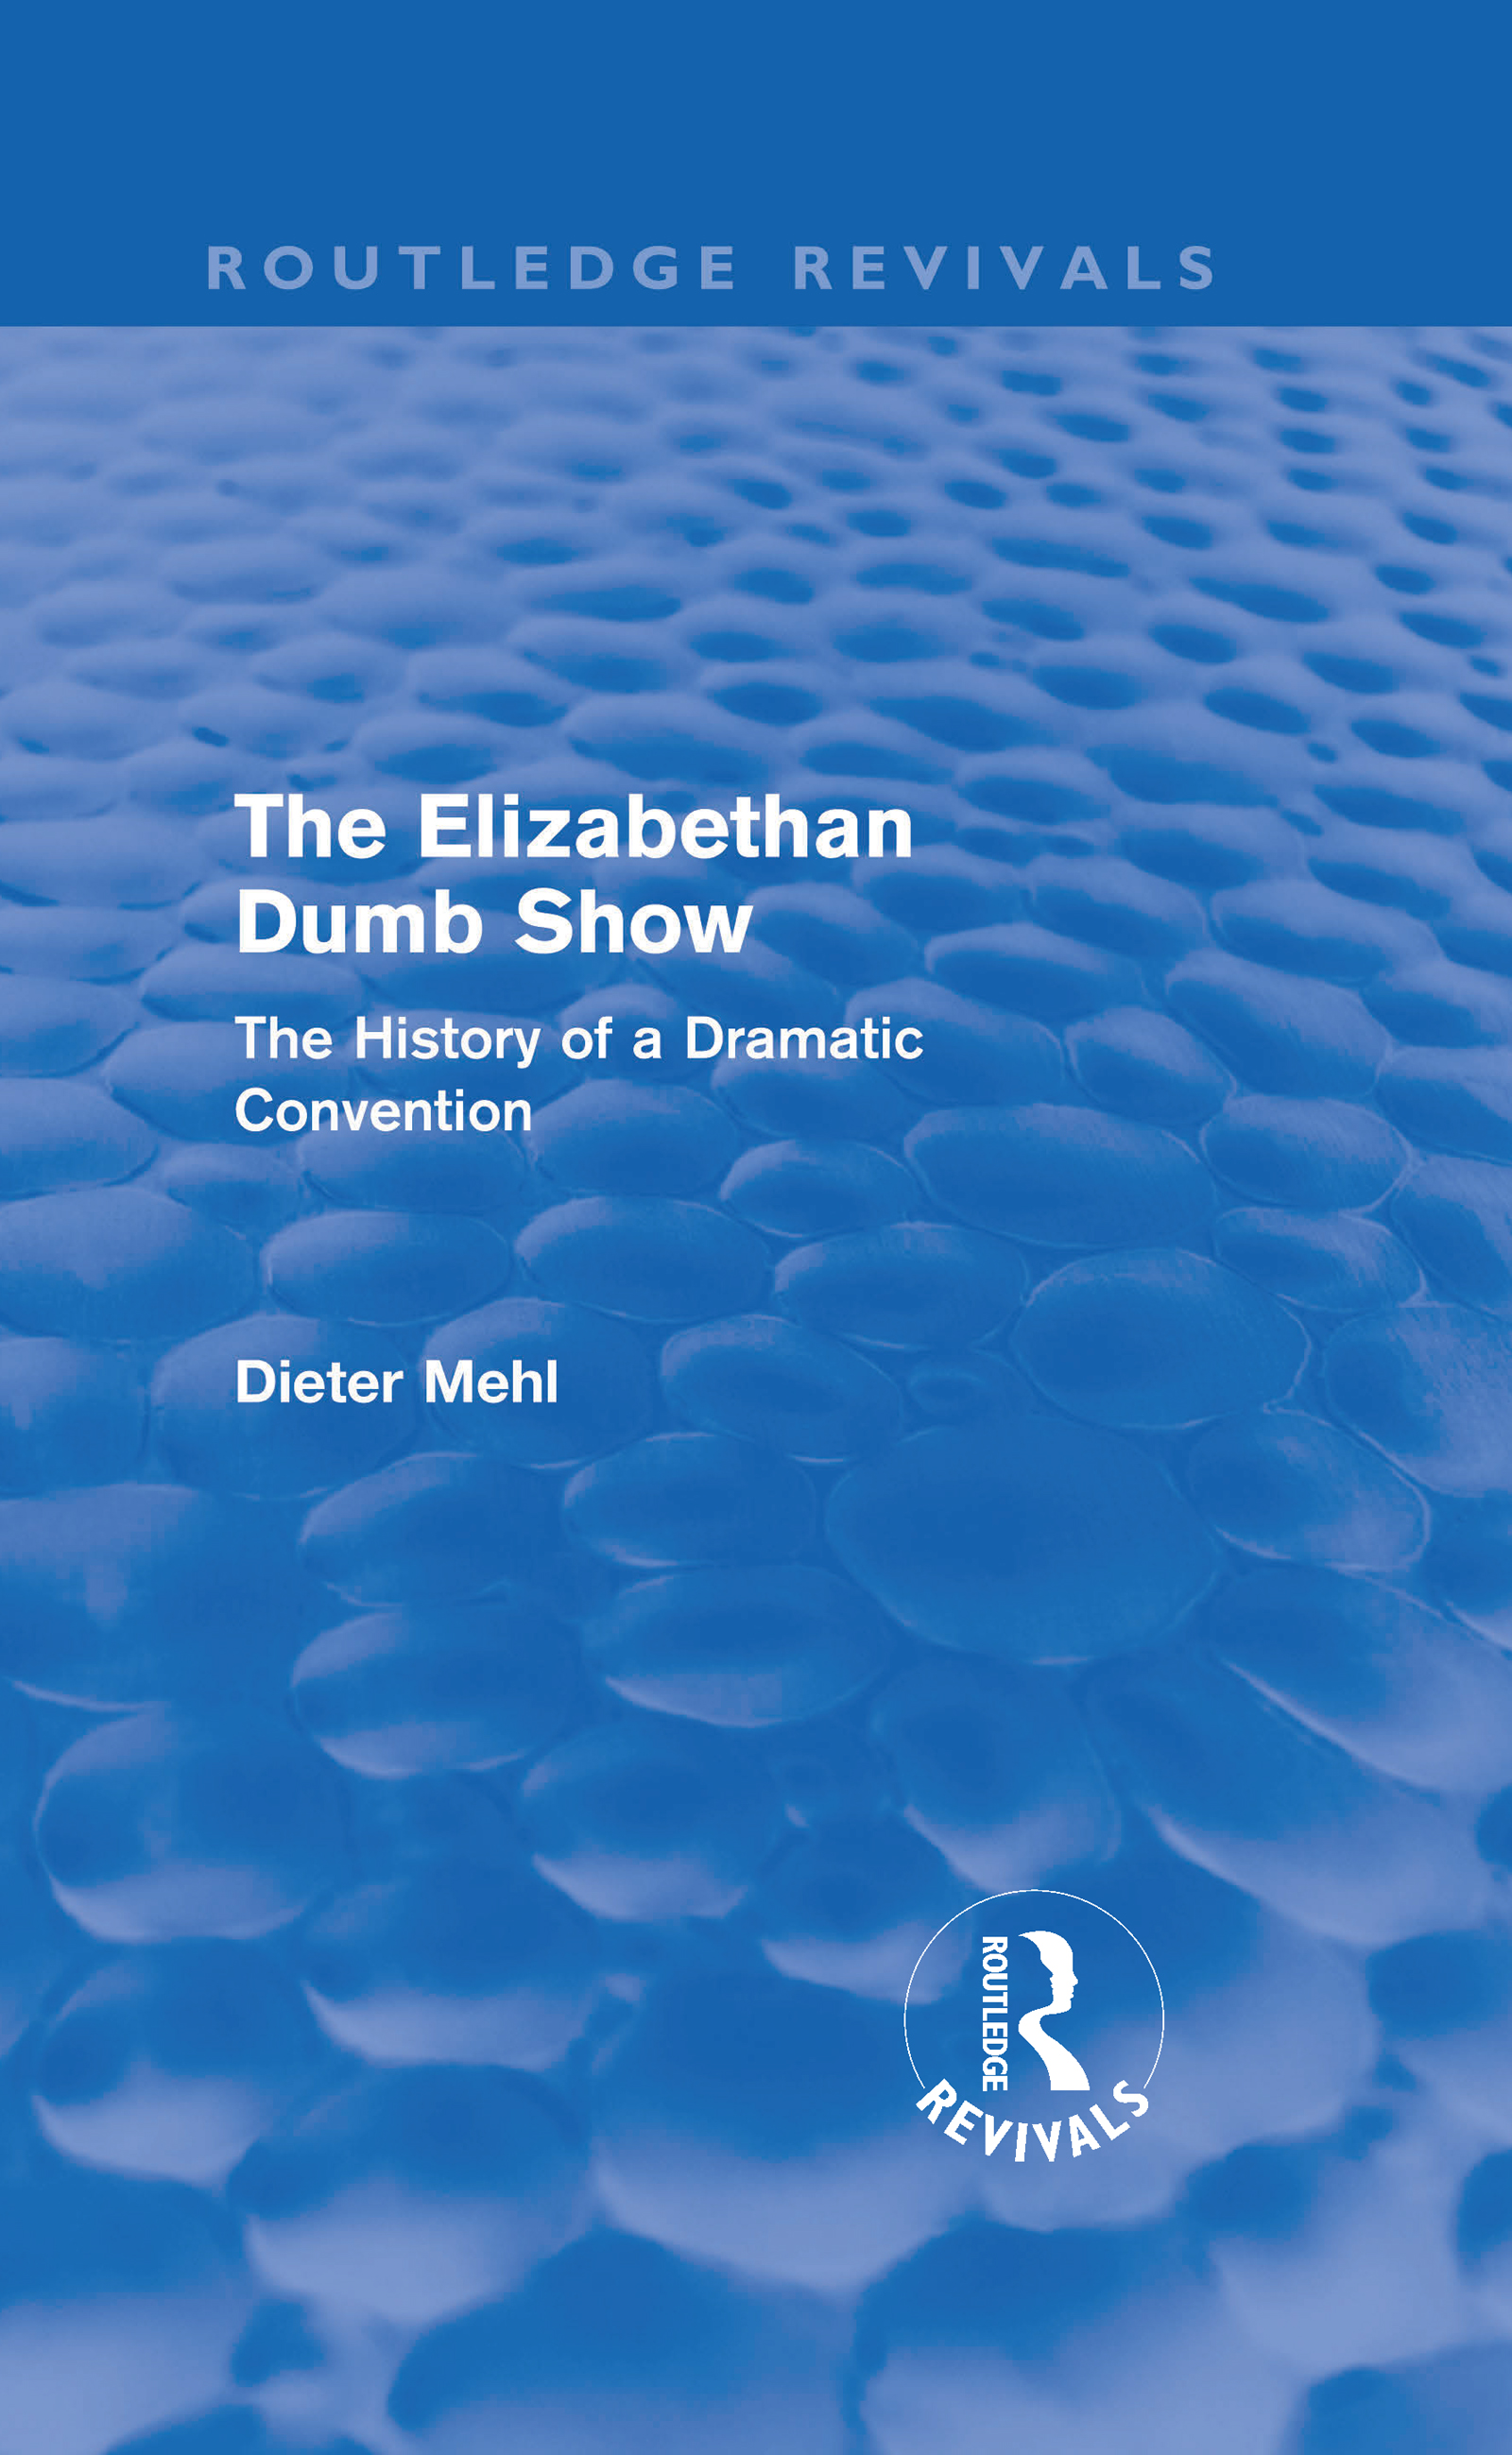 The Elizabethan Dumb Show (Routledge Revivals): The History of a Dramatic Convention (Hardback) book cover